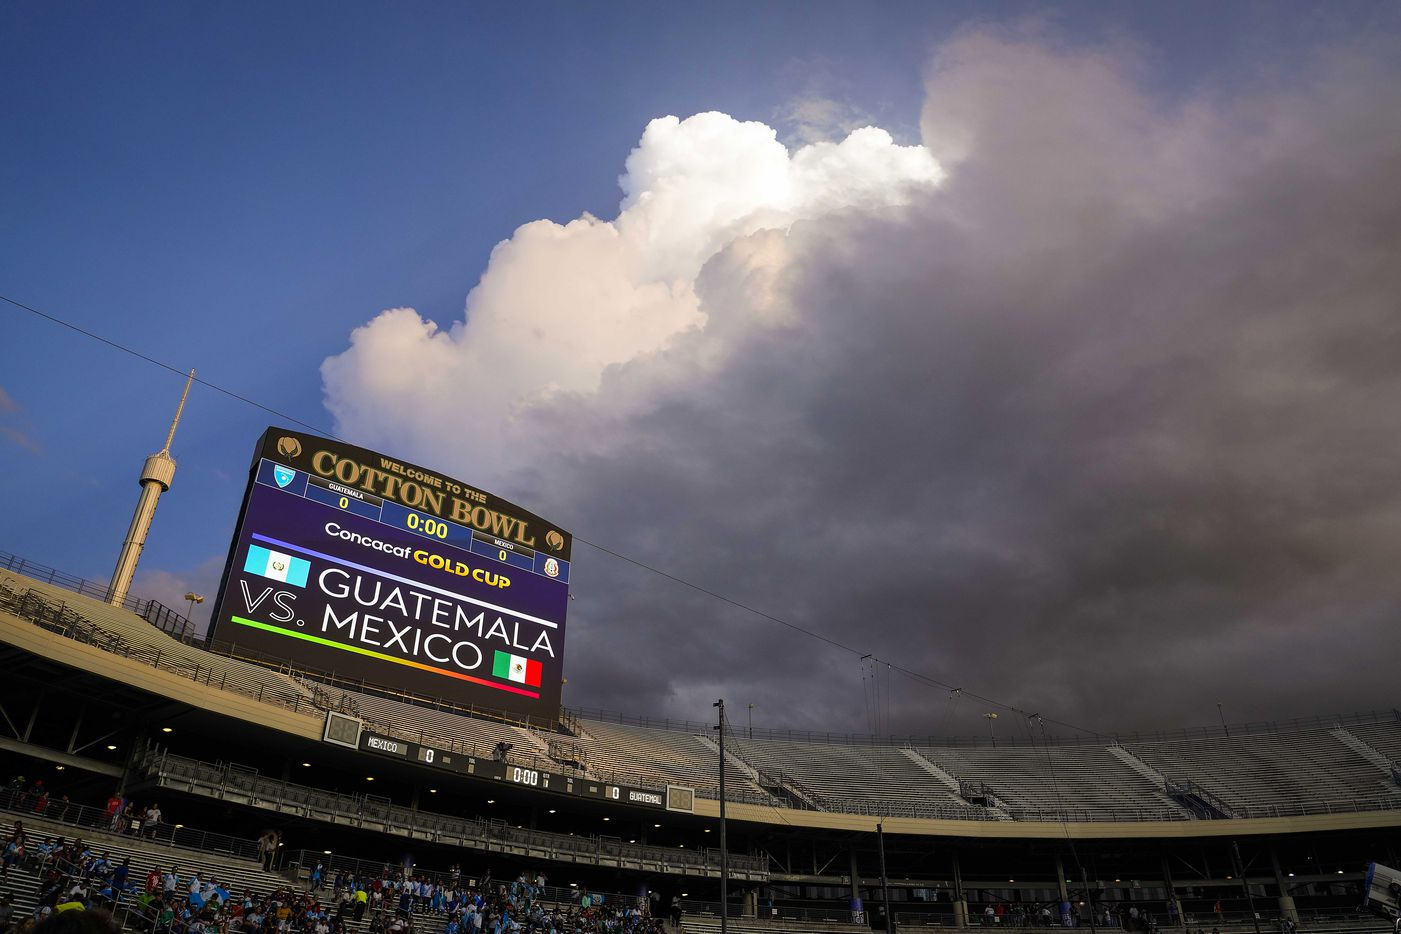 Storm clouds roll over the stadium before a CONCACAF Gold Cup Group A soccer match at the Cotton Bowl between the Mexico and the Guatemala on Wednesday, July 14, 2021, in Dallas. The start of the game was delayed due to weather.